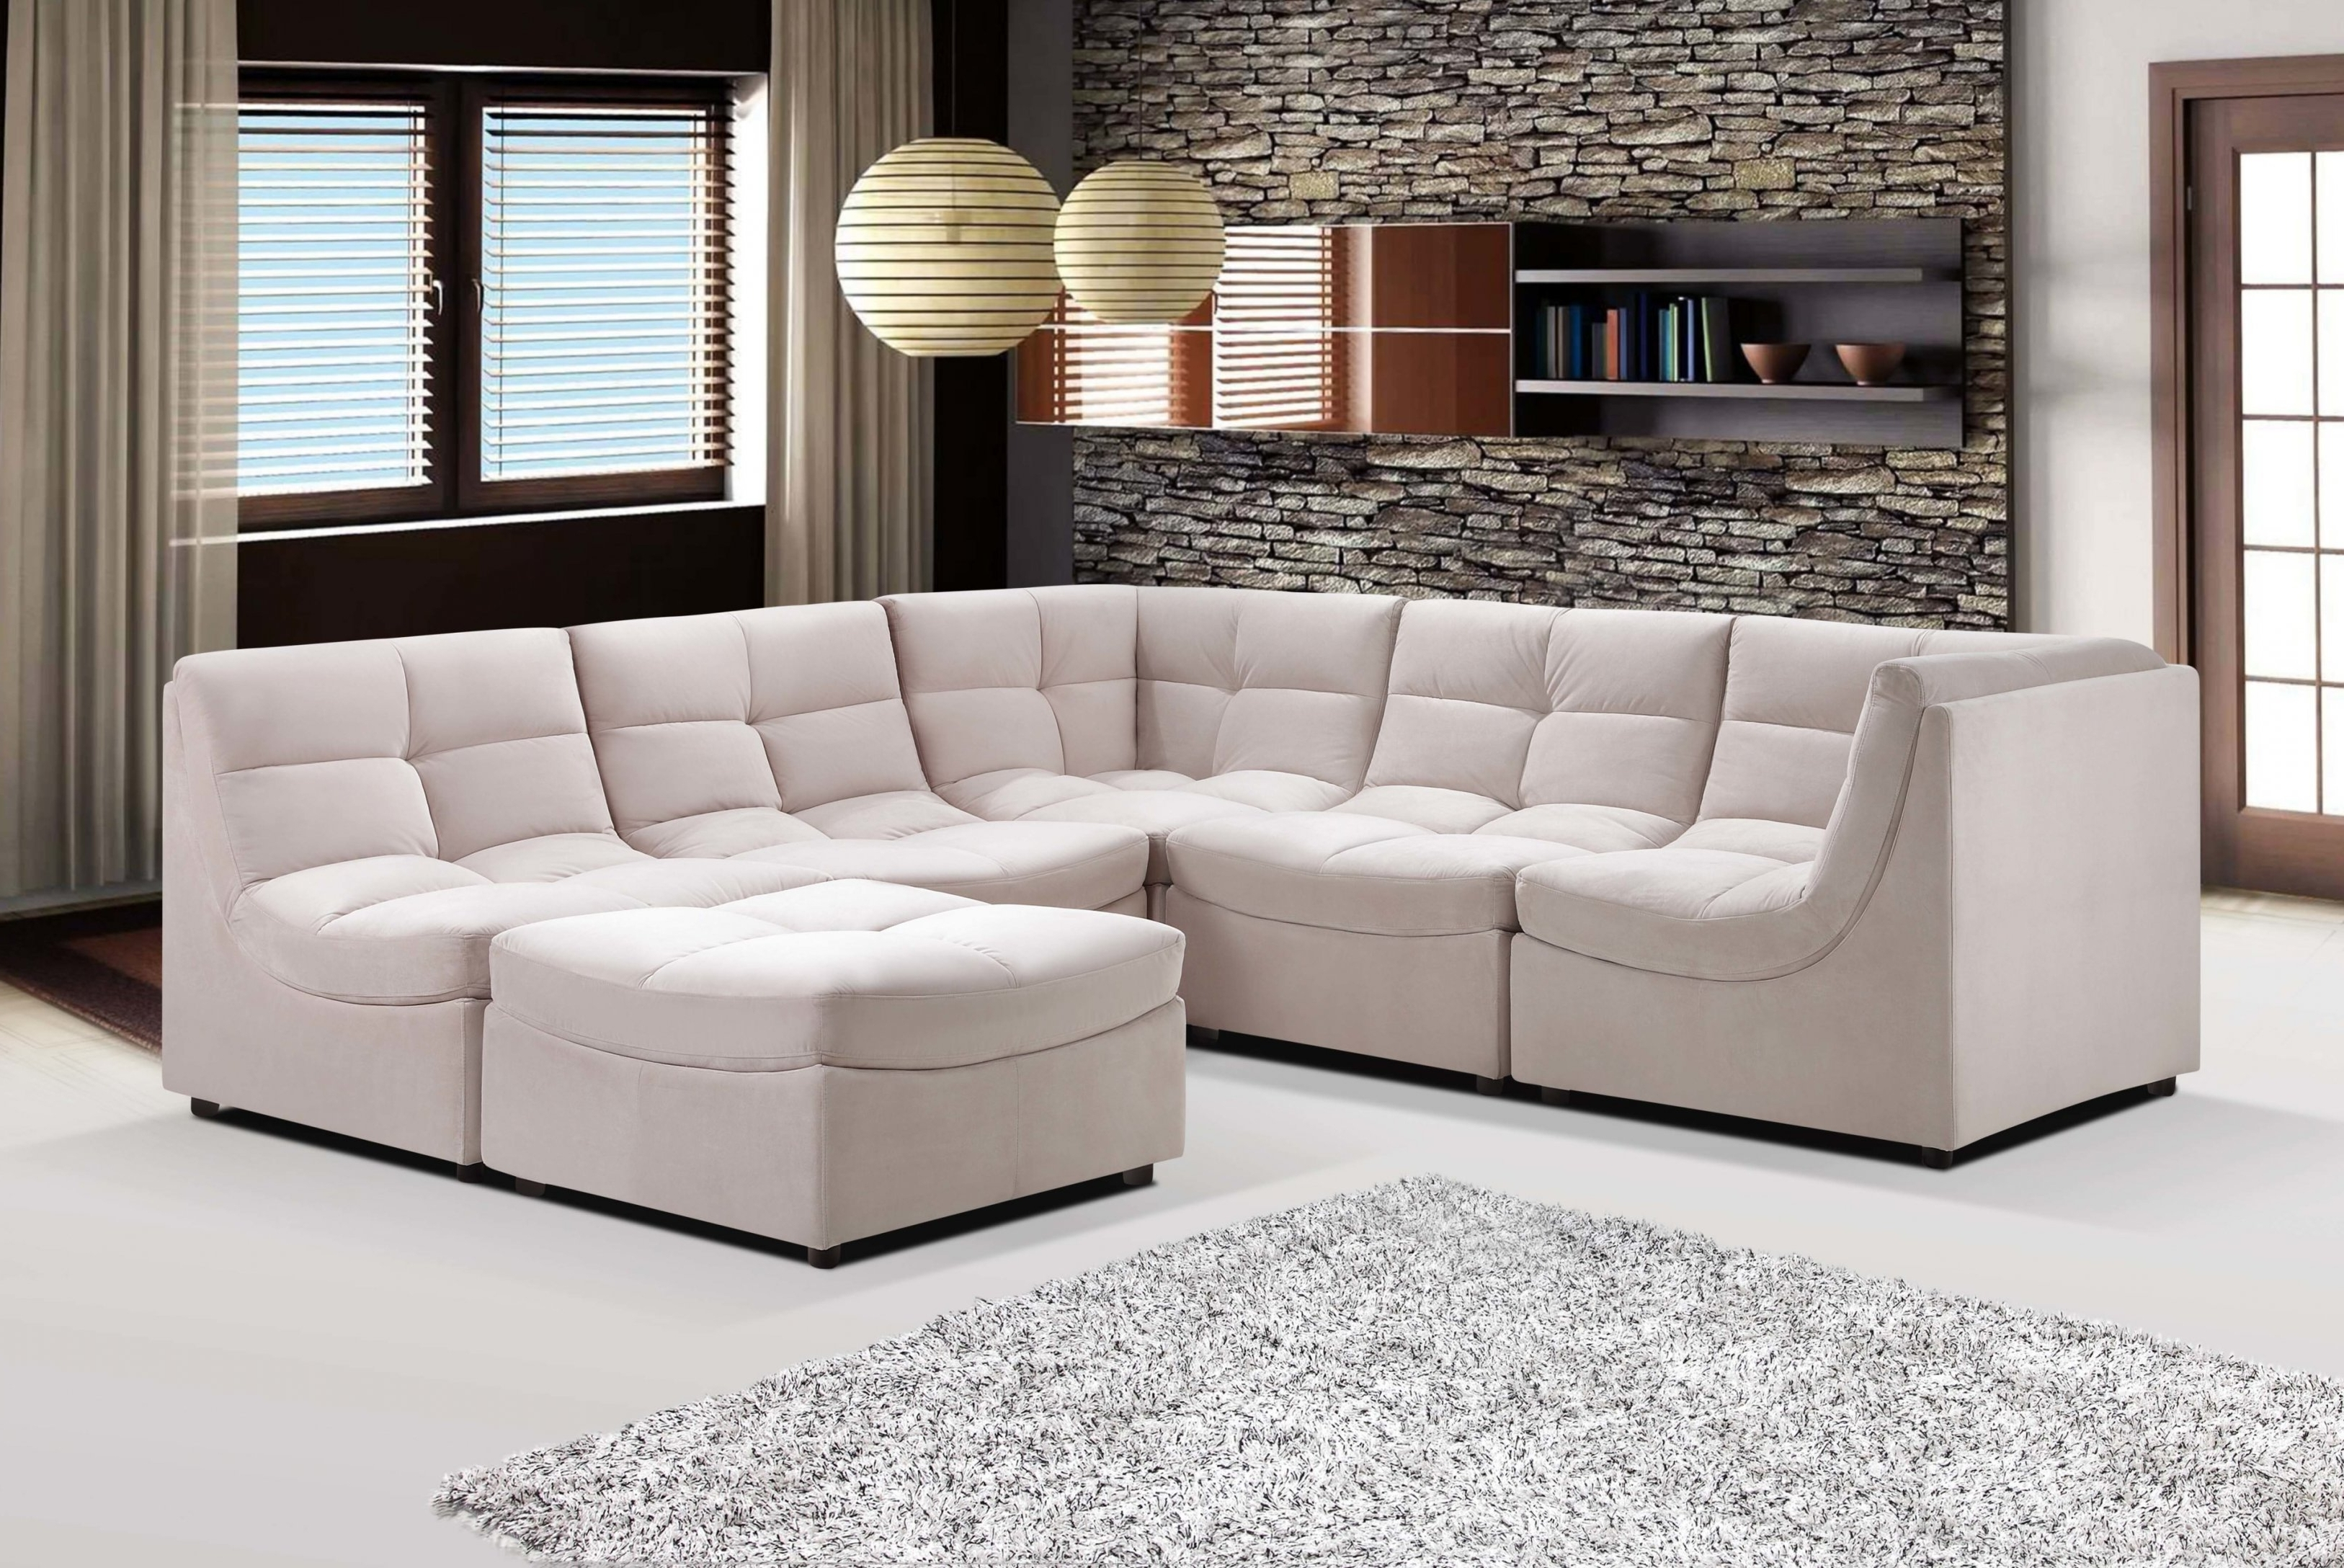 Latest Leather Modular Sectional Sofas For Small Modular Sectional Sofa 21 For Your Sofa Sectionals For Cloud (View 7 of 15)